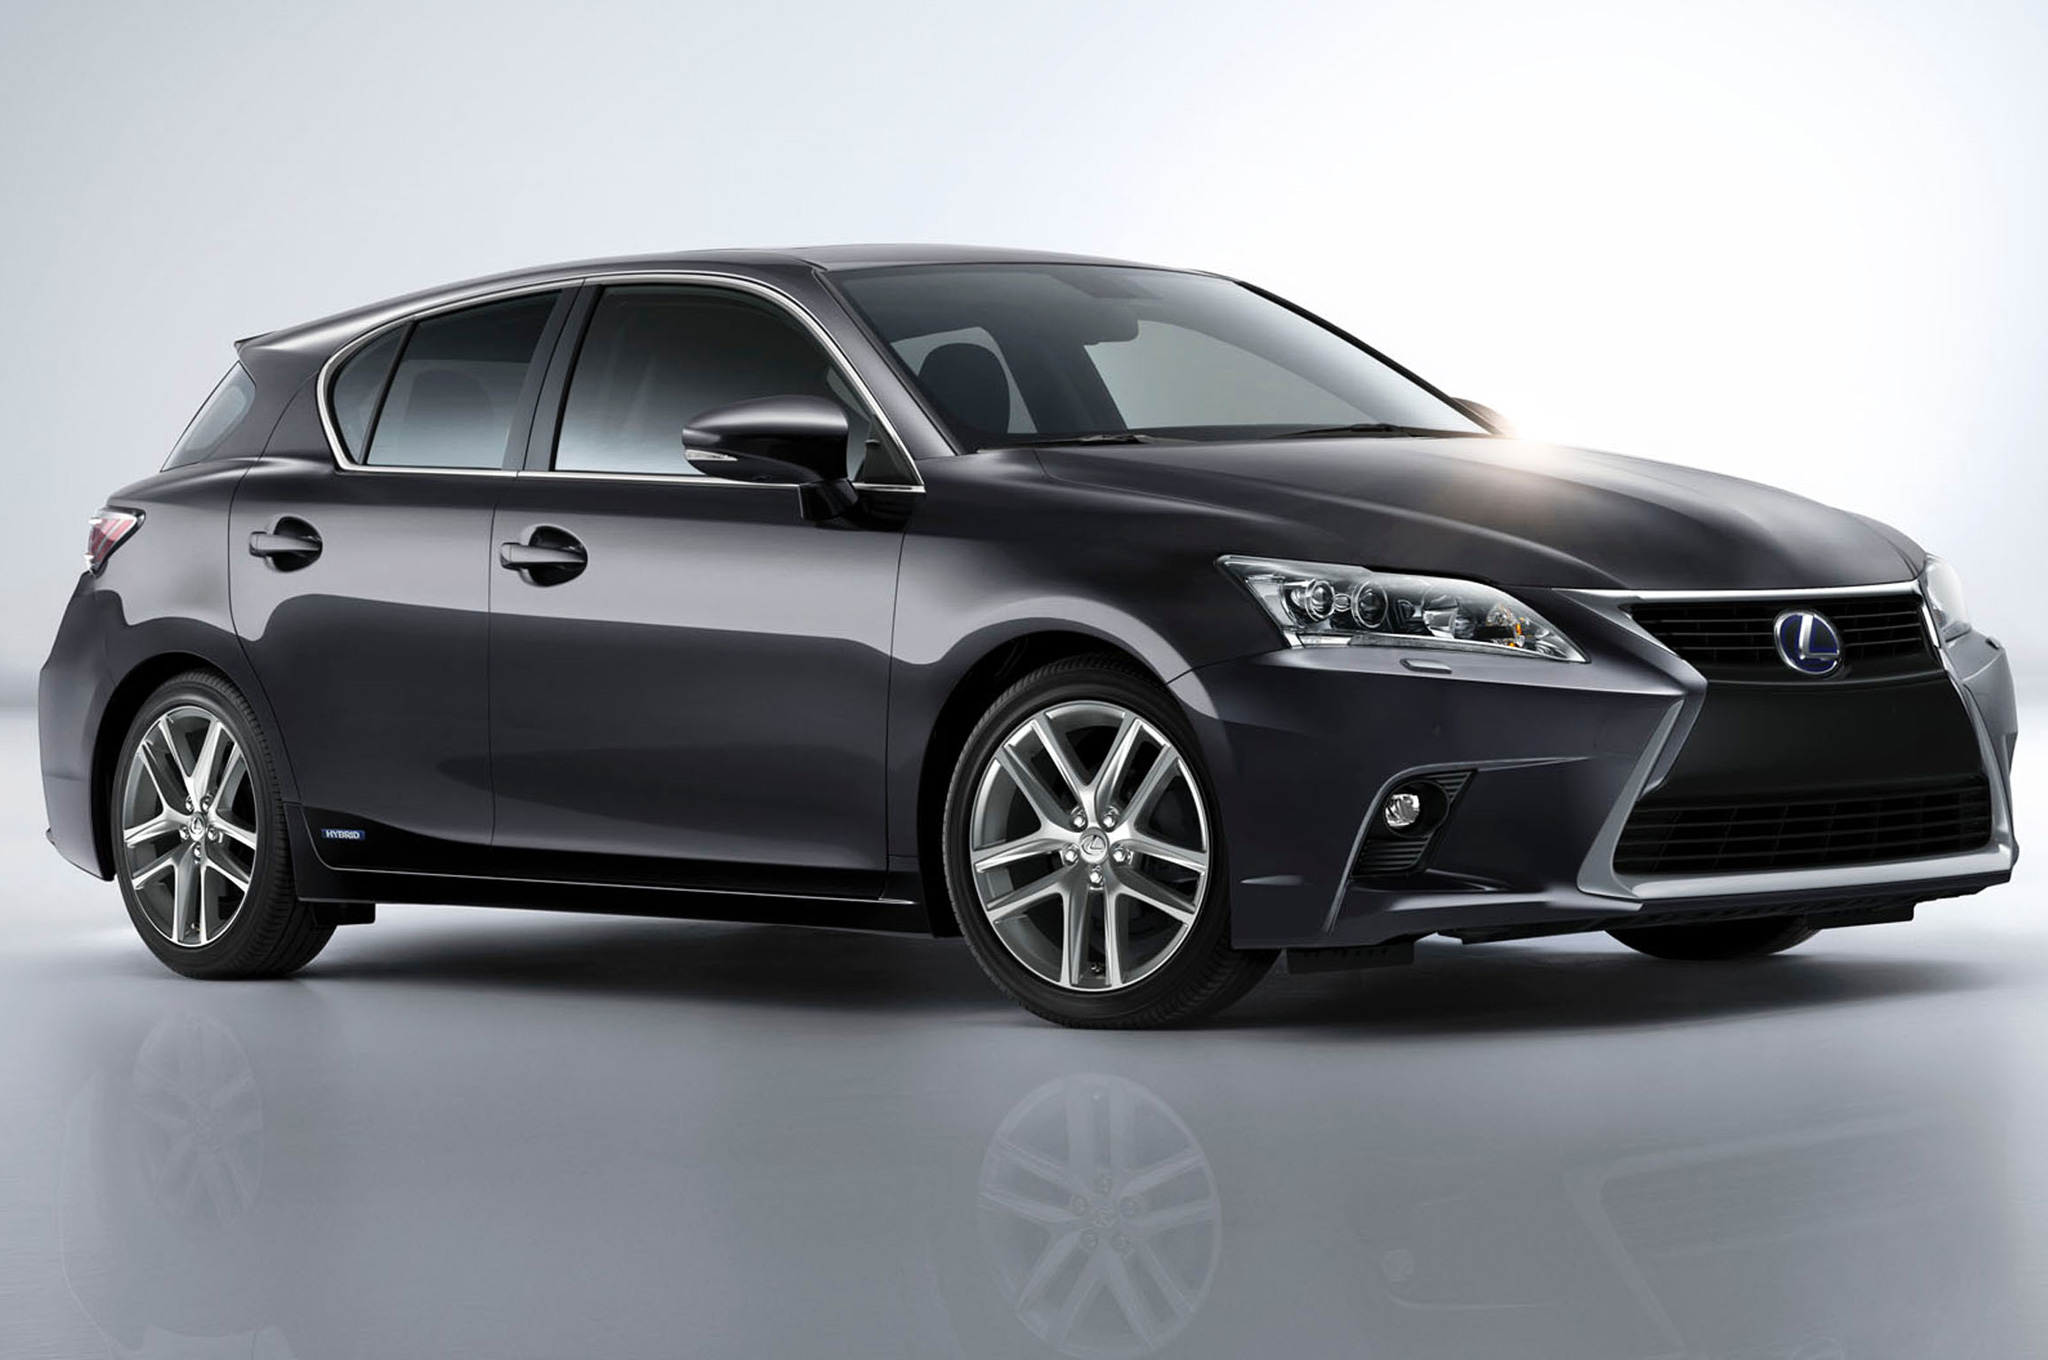 refreshed 2014 lexus ct 200h priced at $32 960 motor trend